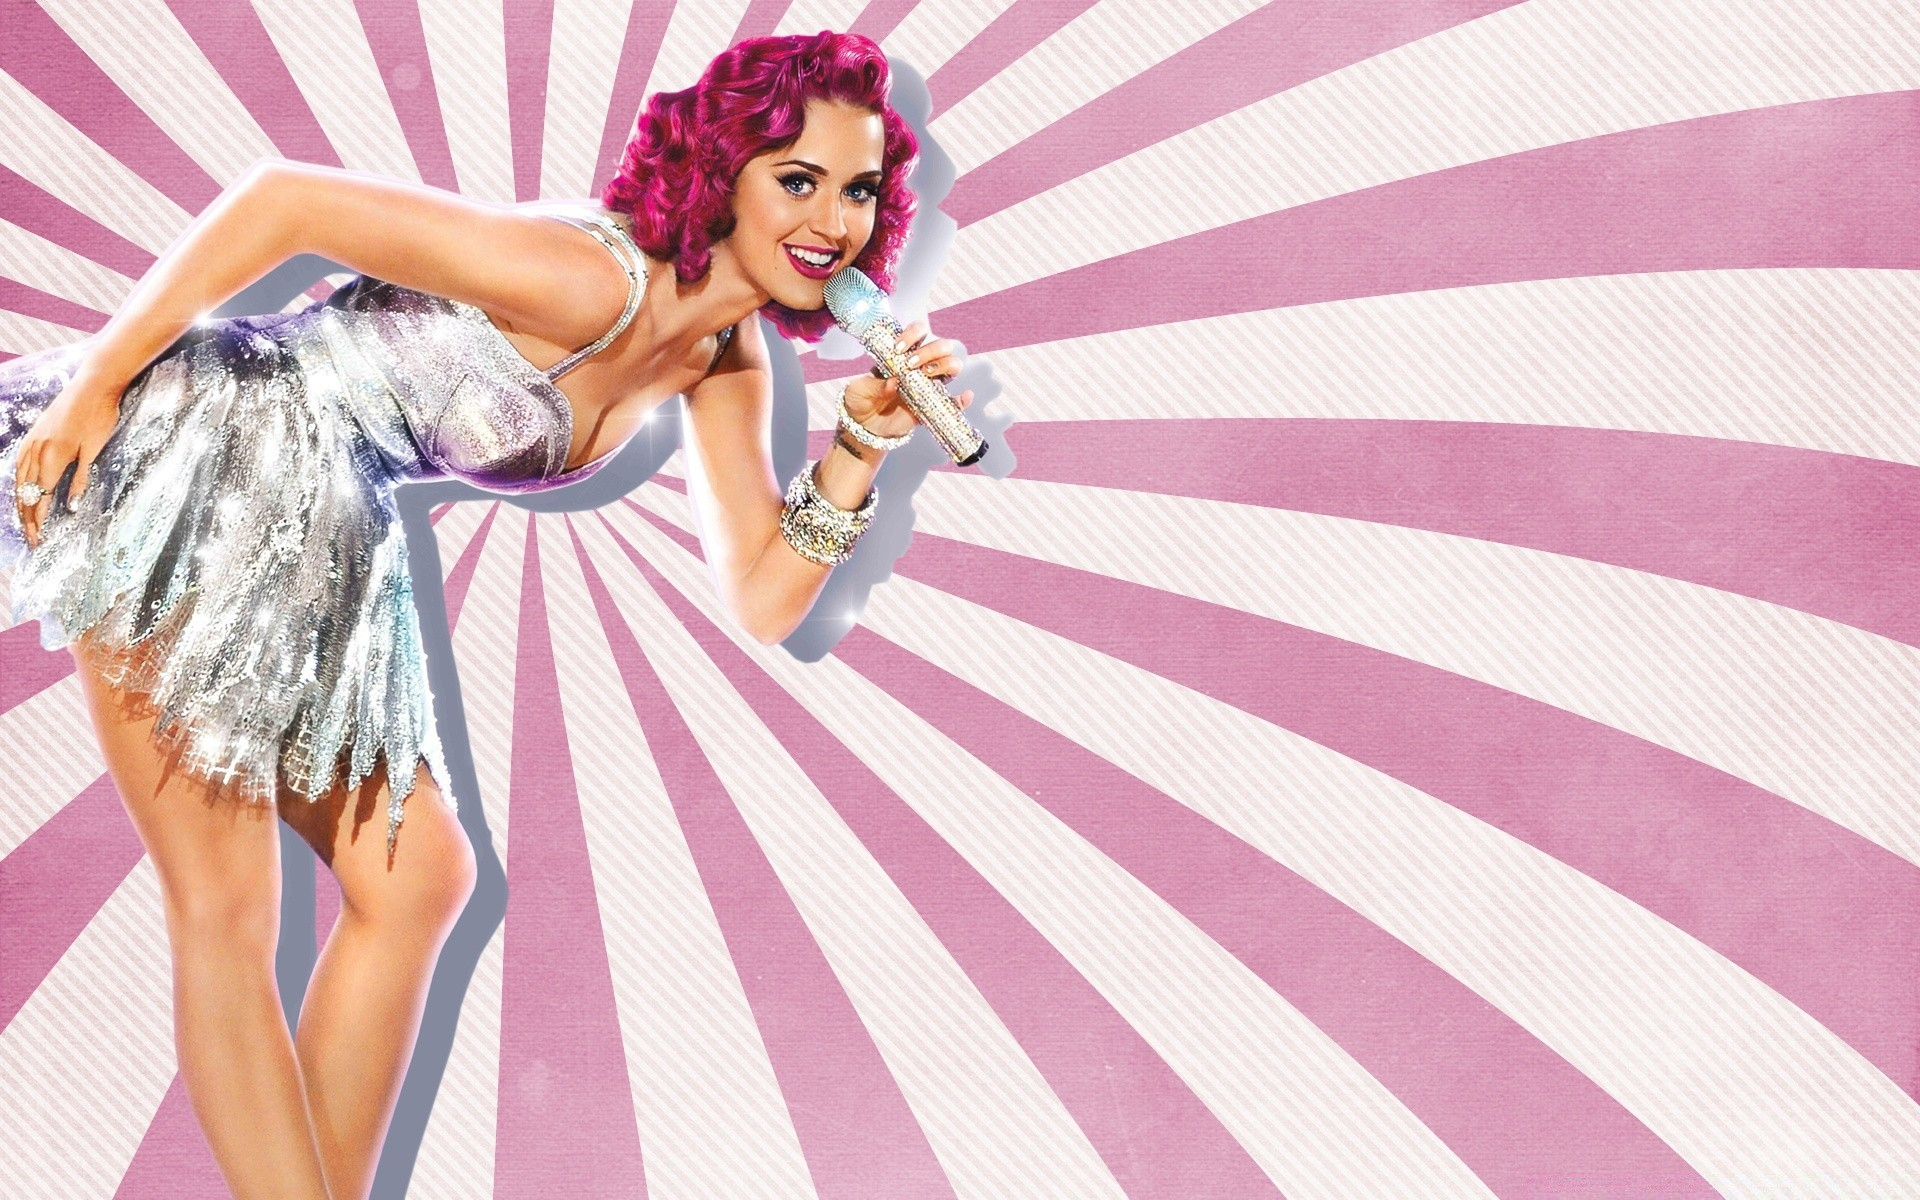 Katy Perry Pin Up Style Phone Wallpapers